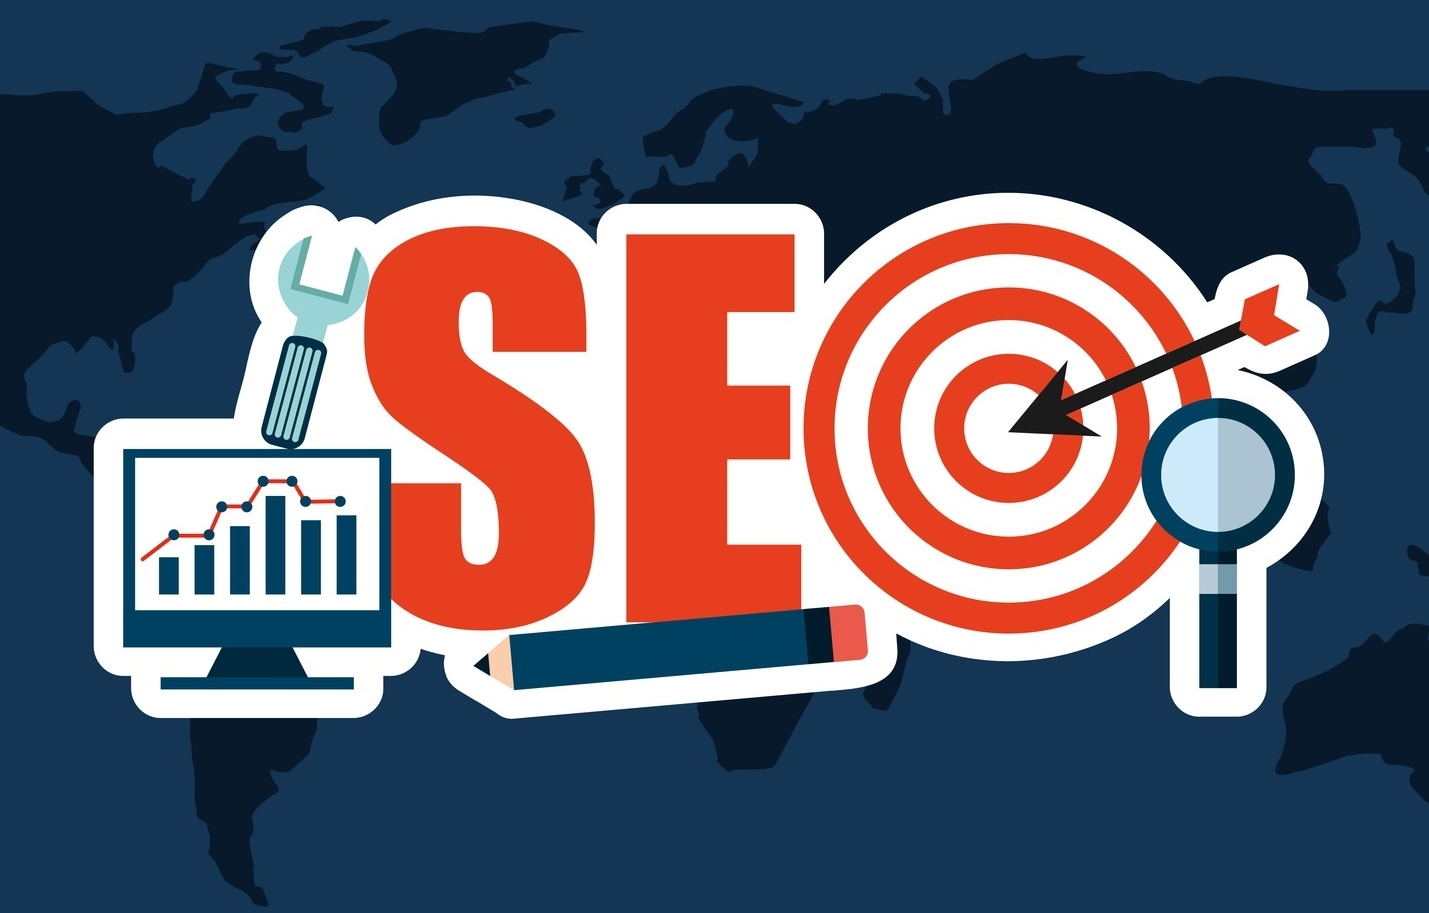 Top 10 SEO Mistakes To Avoid (If You Want More Traffic)